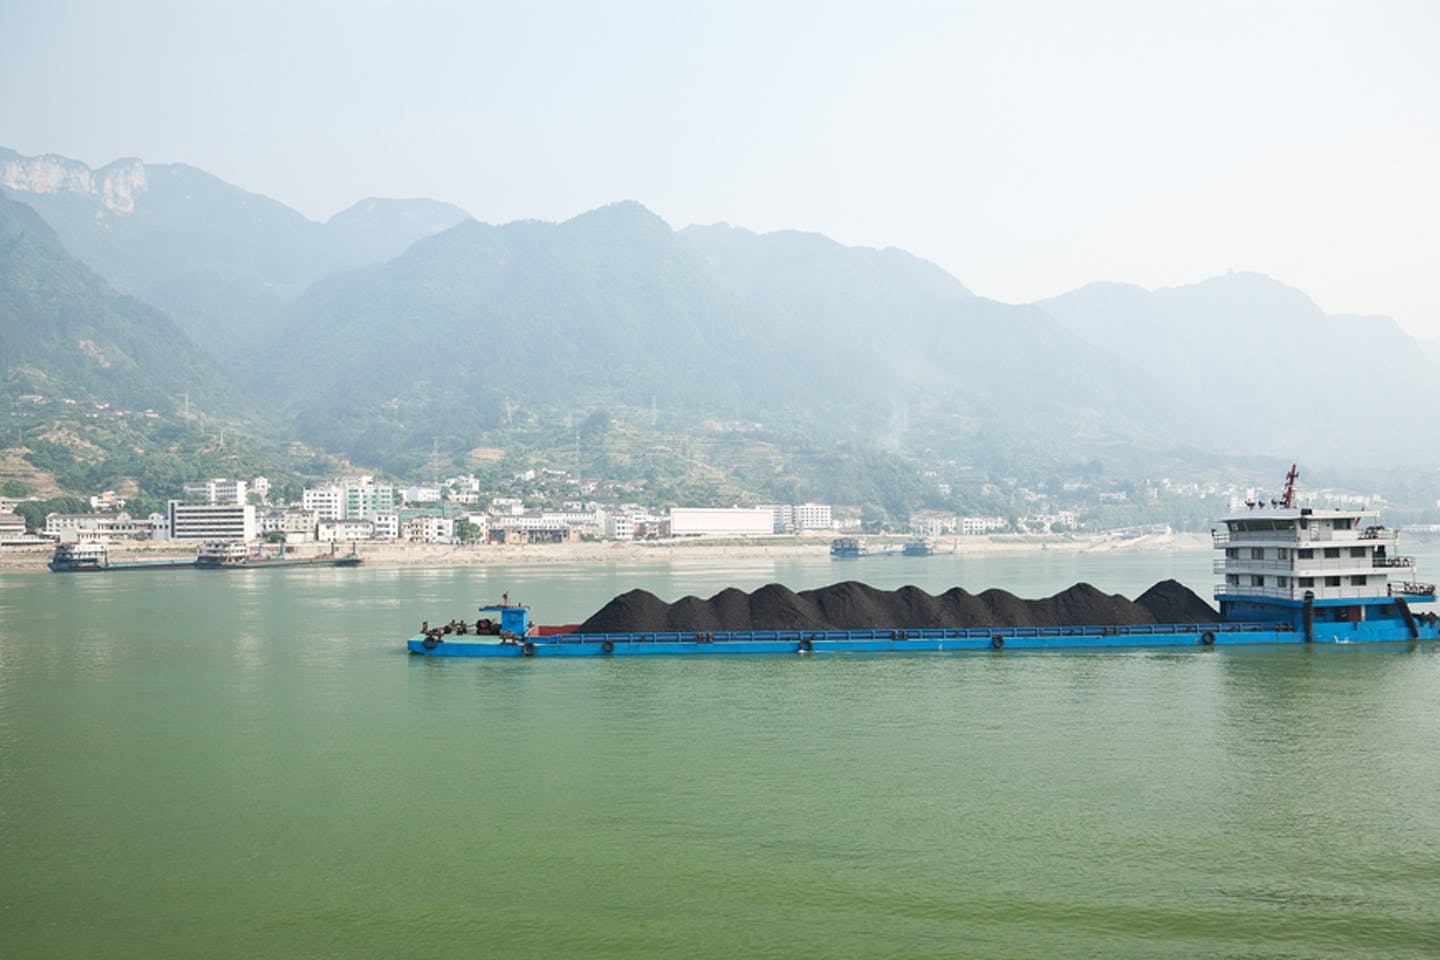 Coal barge sailing along the Yangtze river in China